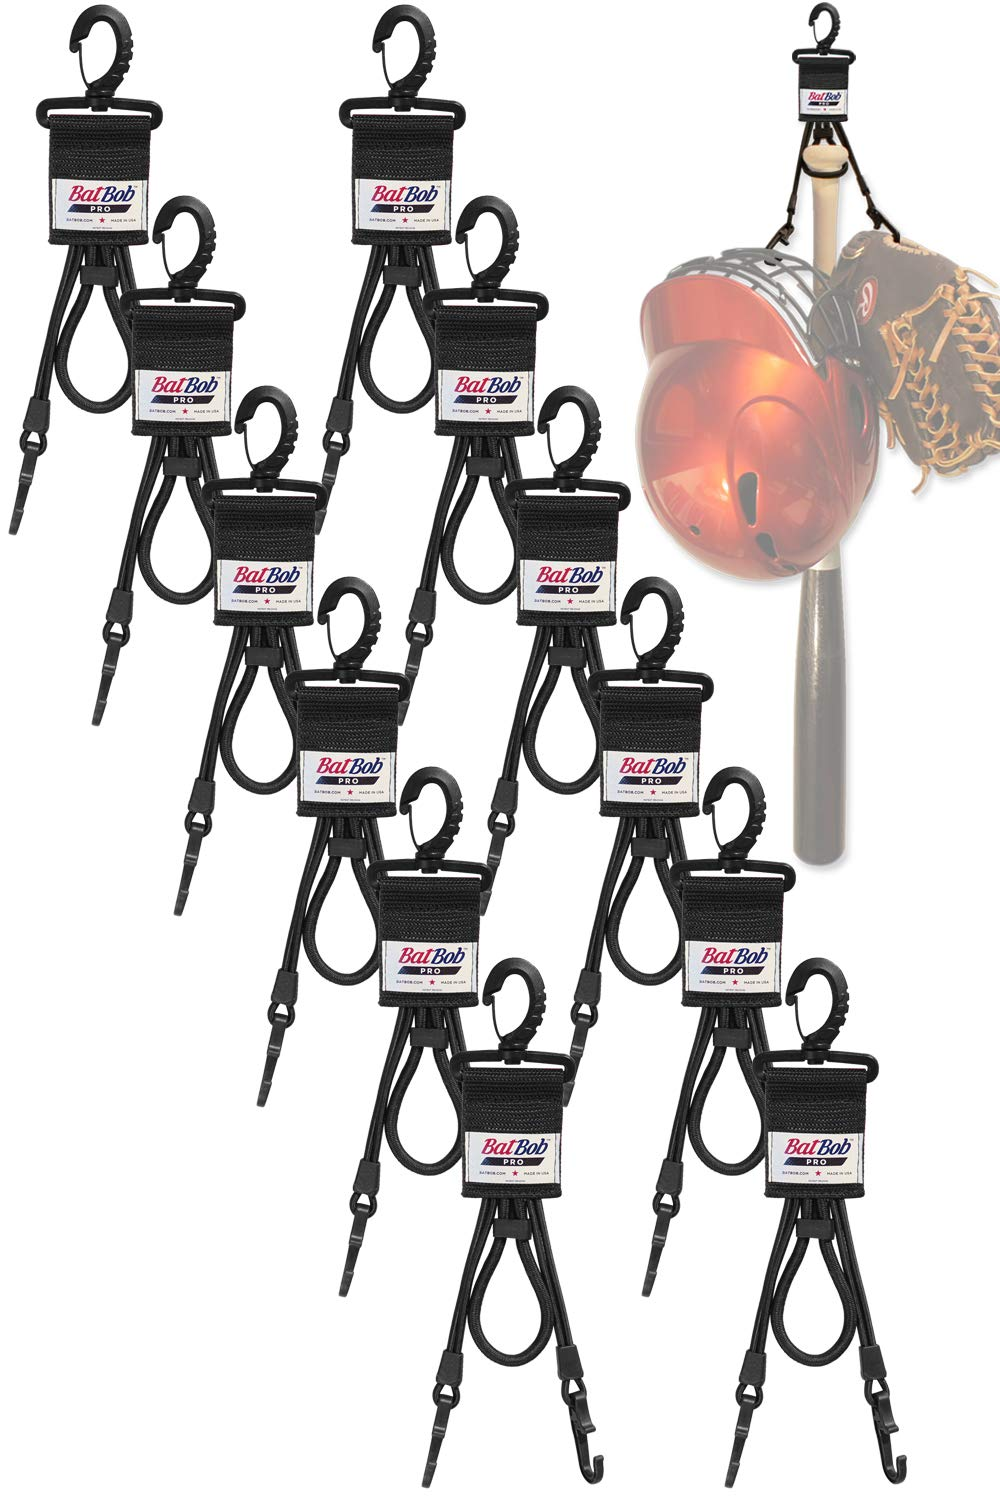 (Team 12 pack) Dugout Gear Hanger - The Dugout Organizer - For Baseball and Softball to hold bats, helmets and gloves (Black) by BatBob